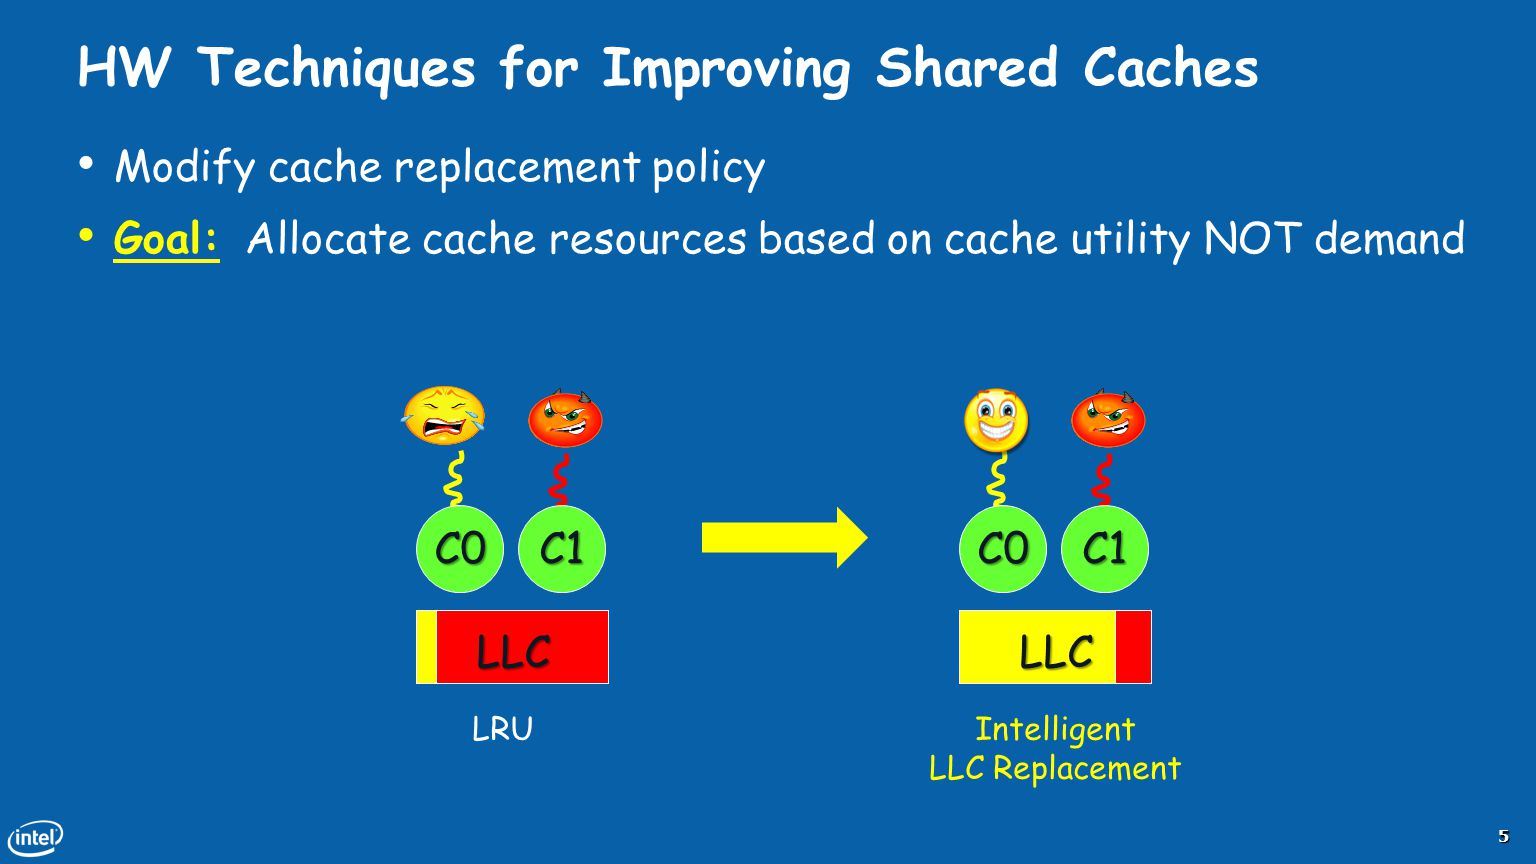 HW Techniques for Improving Shared Caches